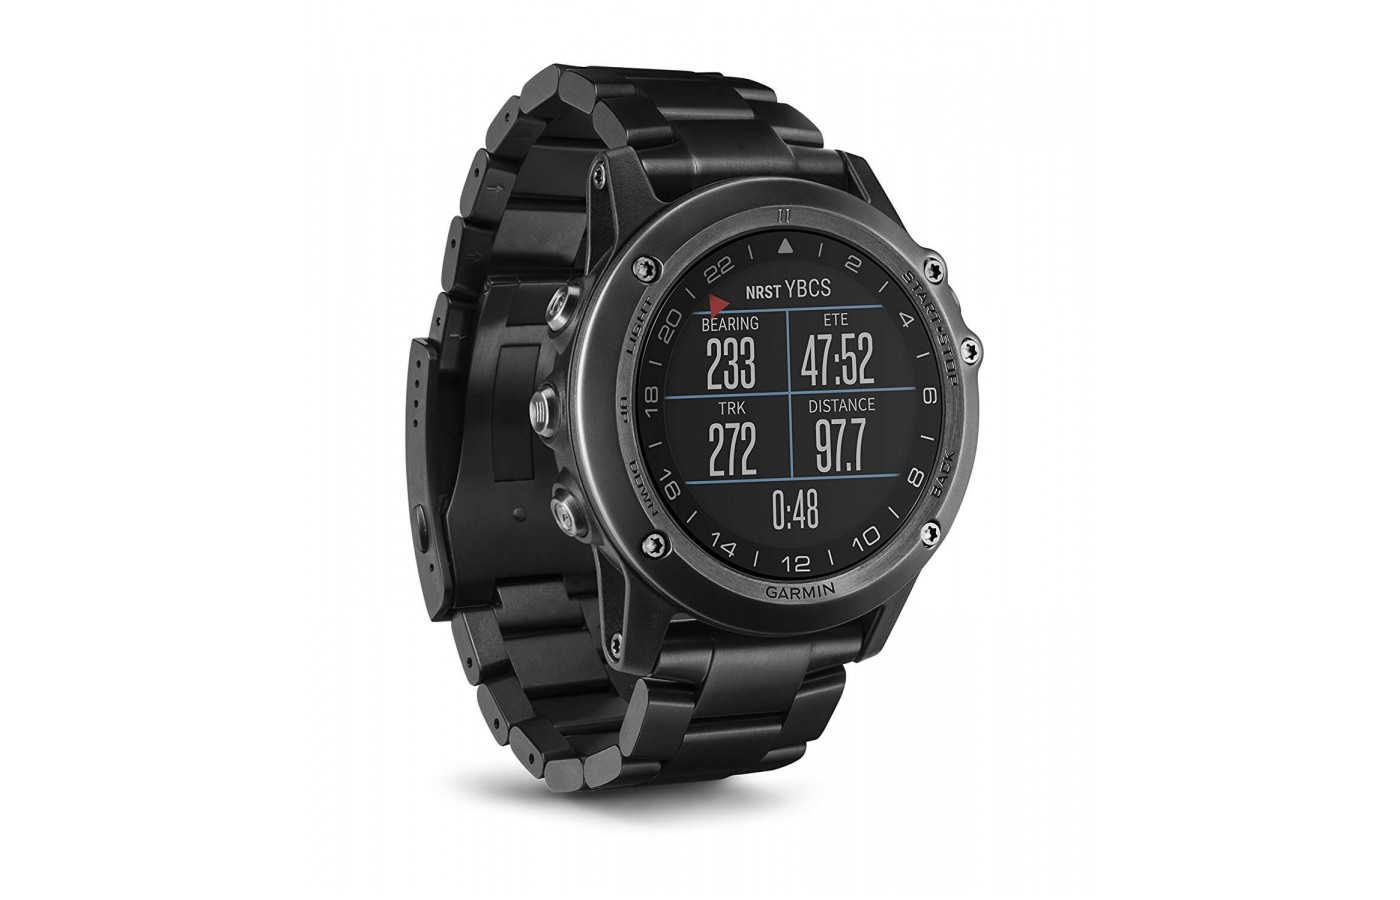 The Garmin D2 Bravo is GPS enabled